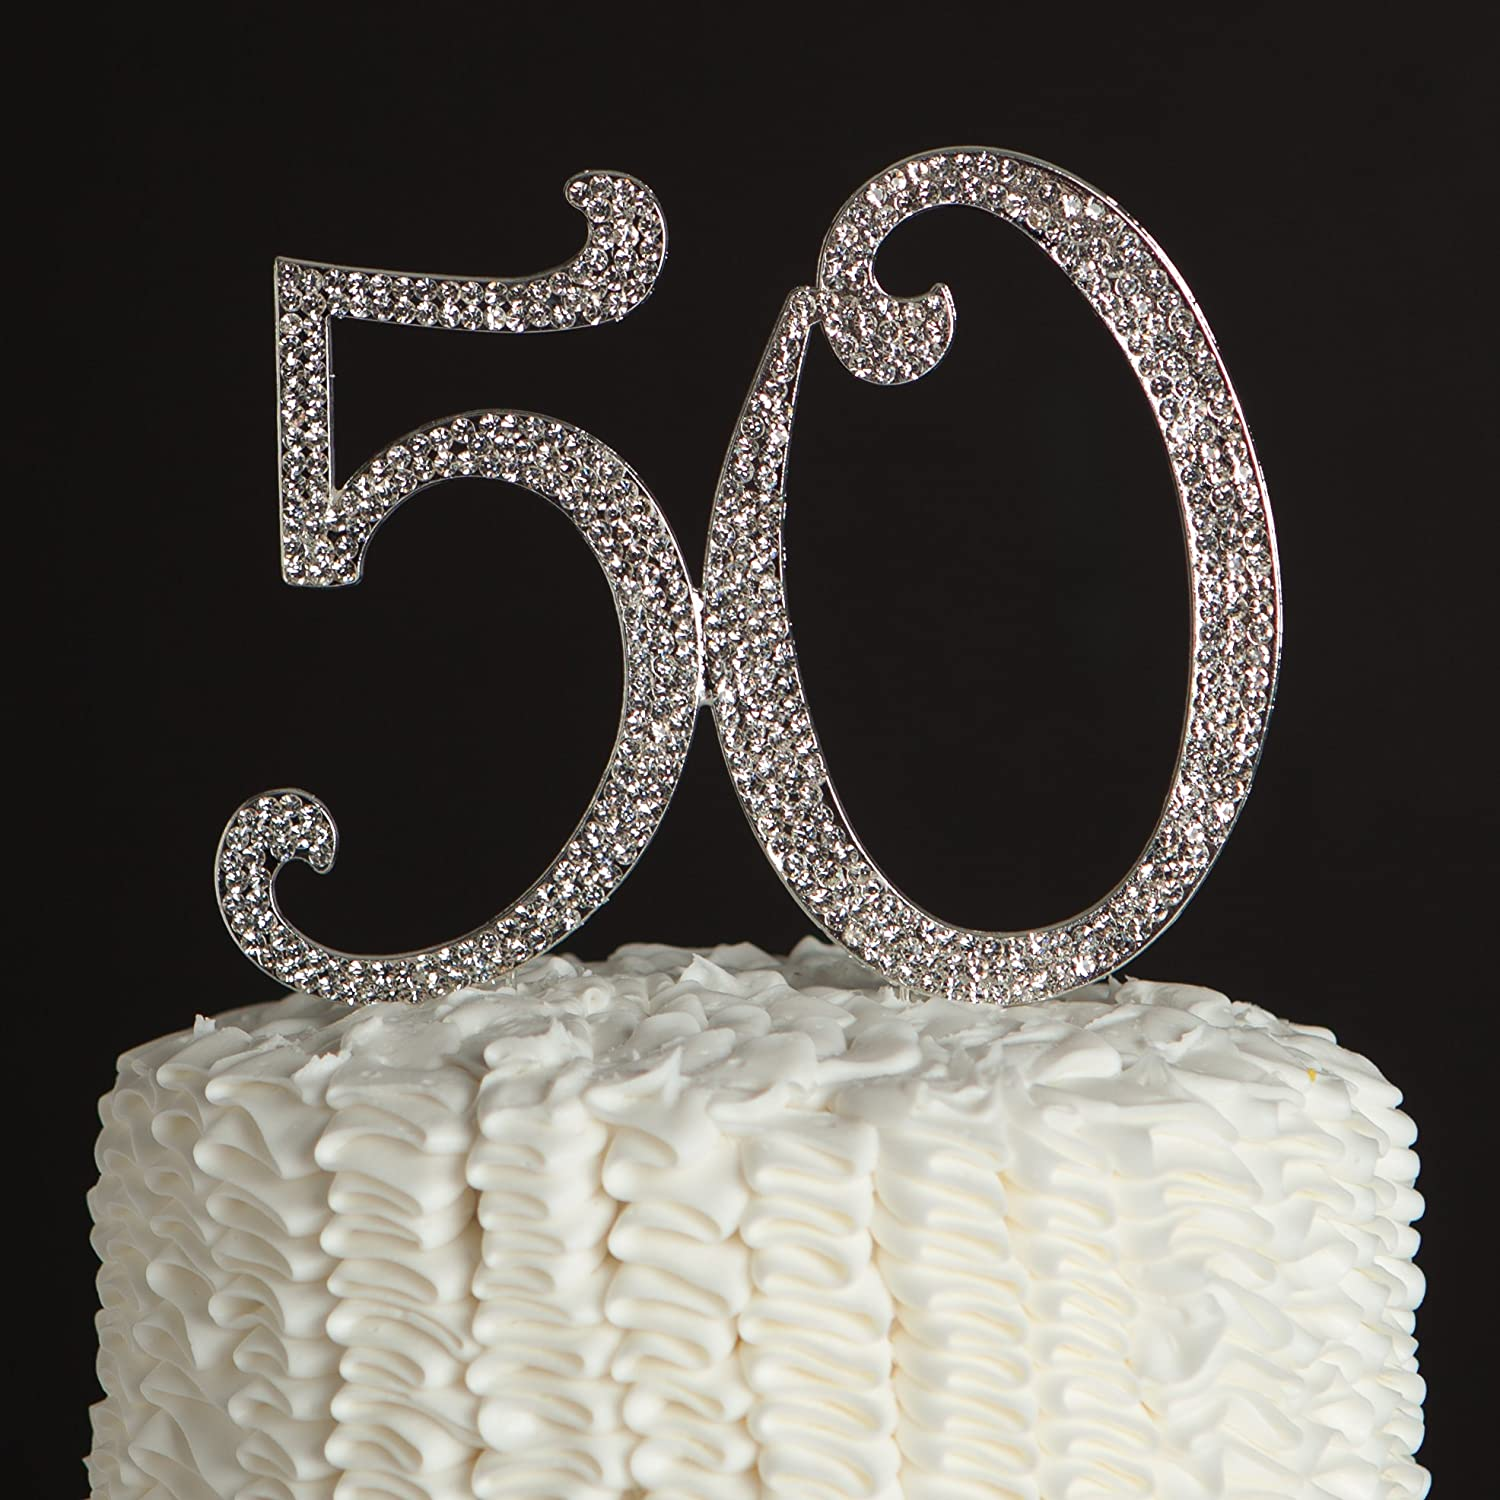 50th Anniversary Cupcake Decorations Amazoncom 50 Cake Topper For 50th Birthday Or Anniversary Party